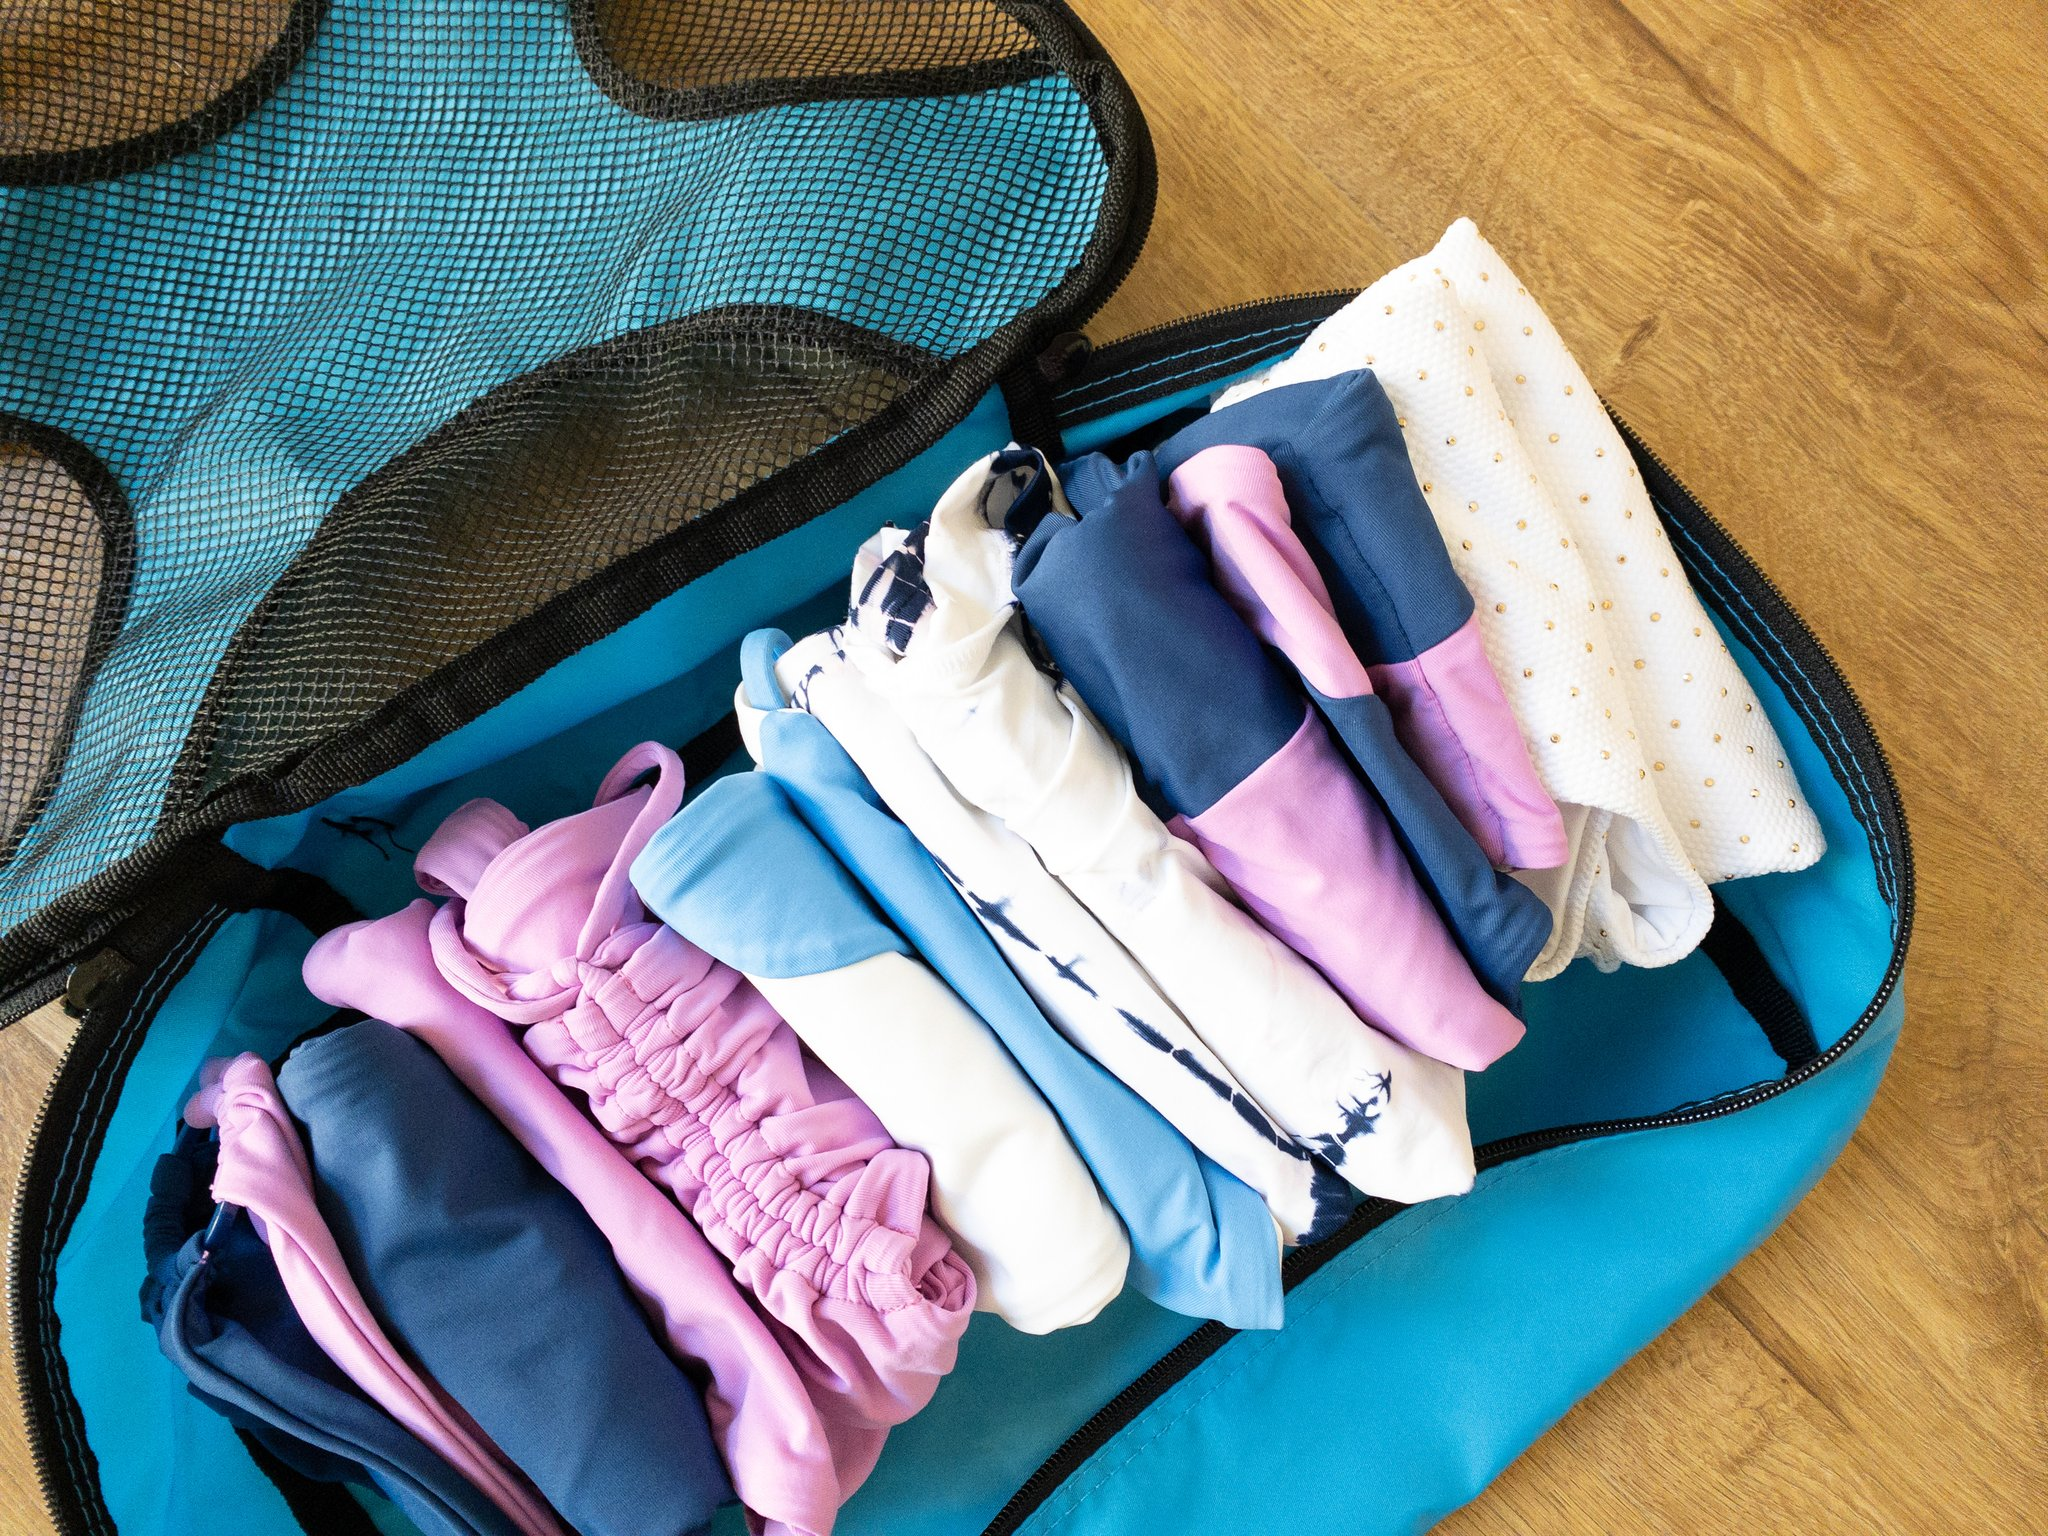 swimsuits folded in a packing cube